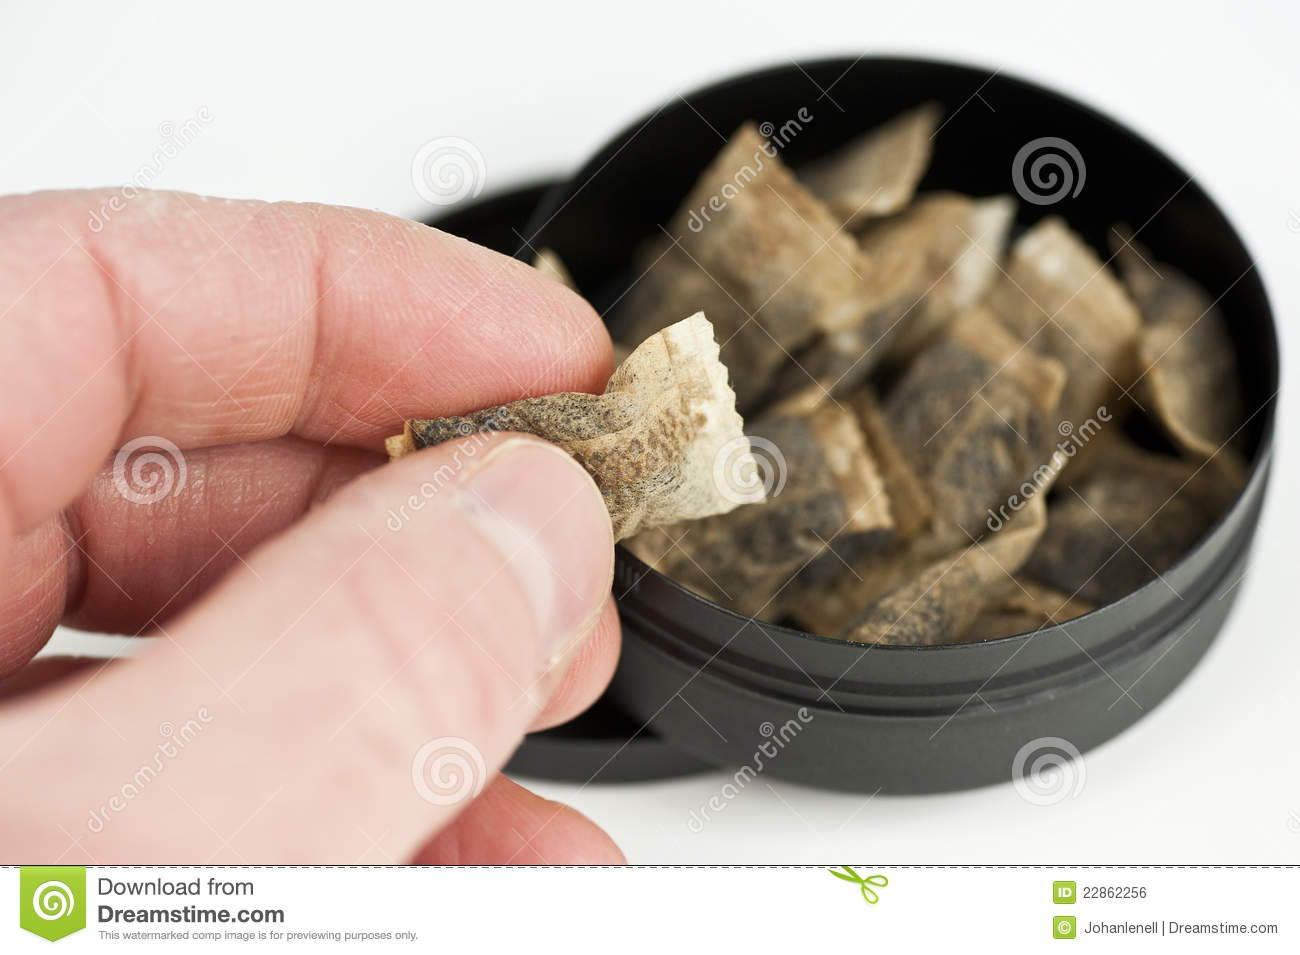 how to make moist snuff at home